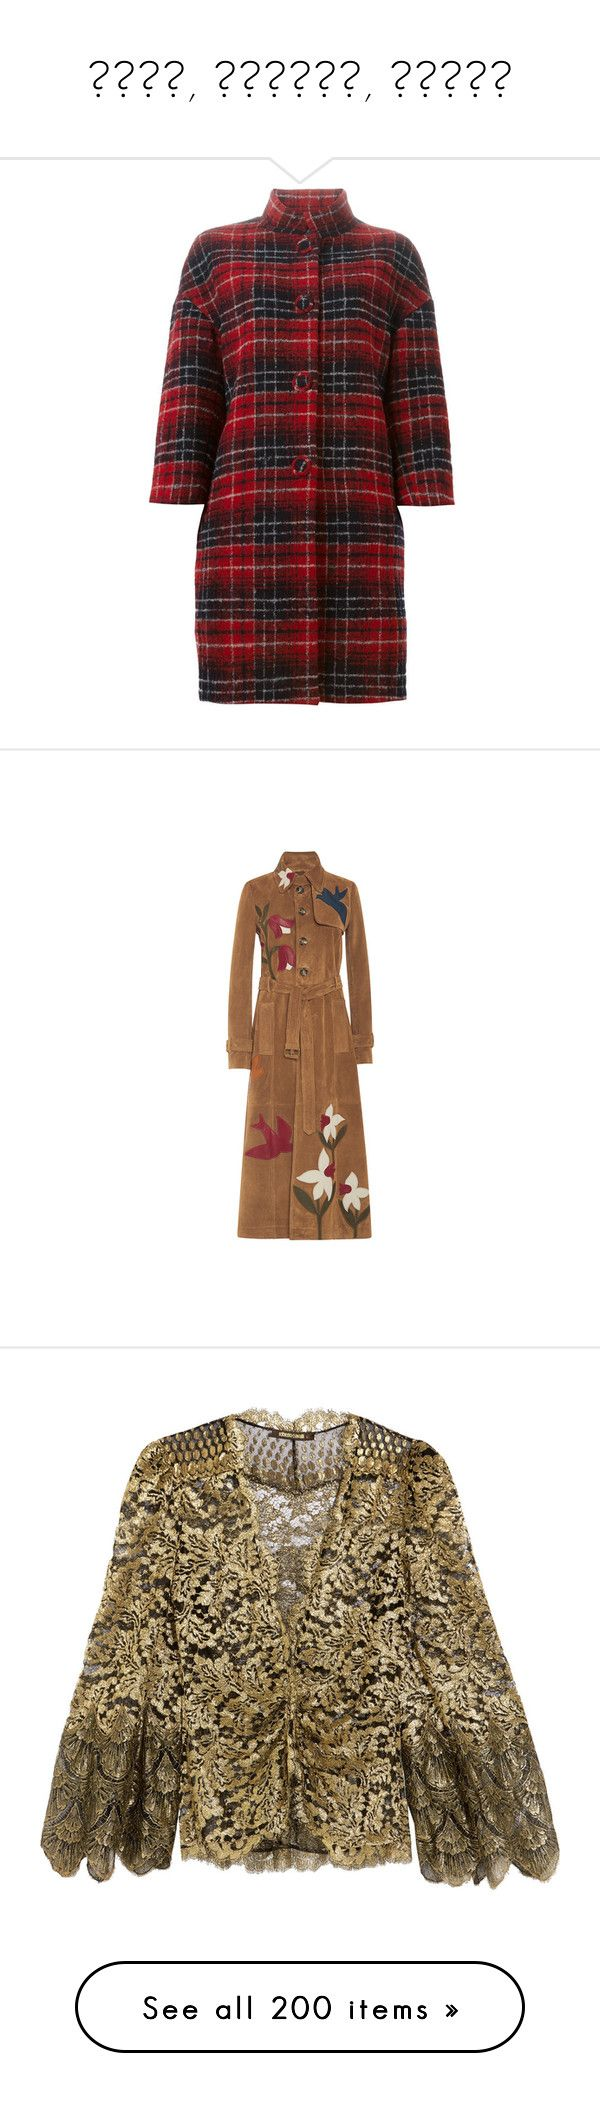 """""""Юбки, жакеты, брюки"""" by bliznec-anna ❤ liked on Polyvore featuring outerwear, coats, red, tartan coat, red tartan coat, red coat, red plaid coat, ermanno scervino, valentino and brown coat"""